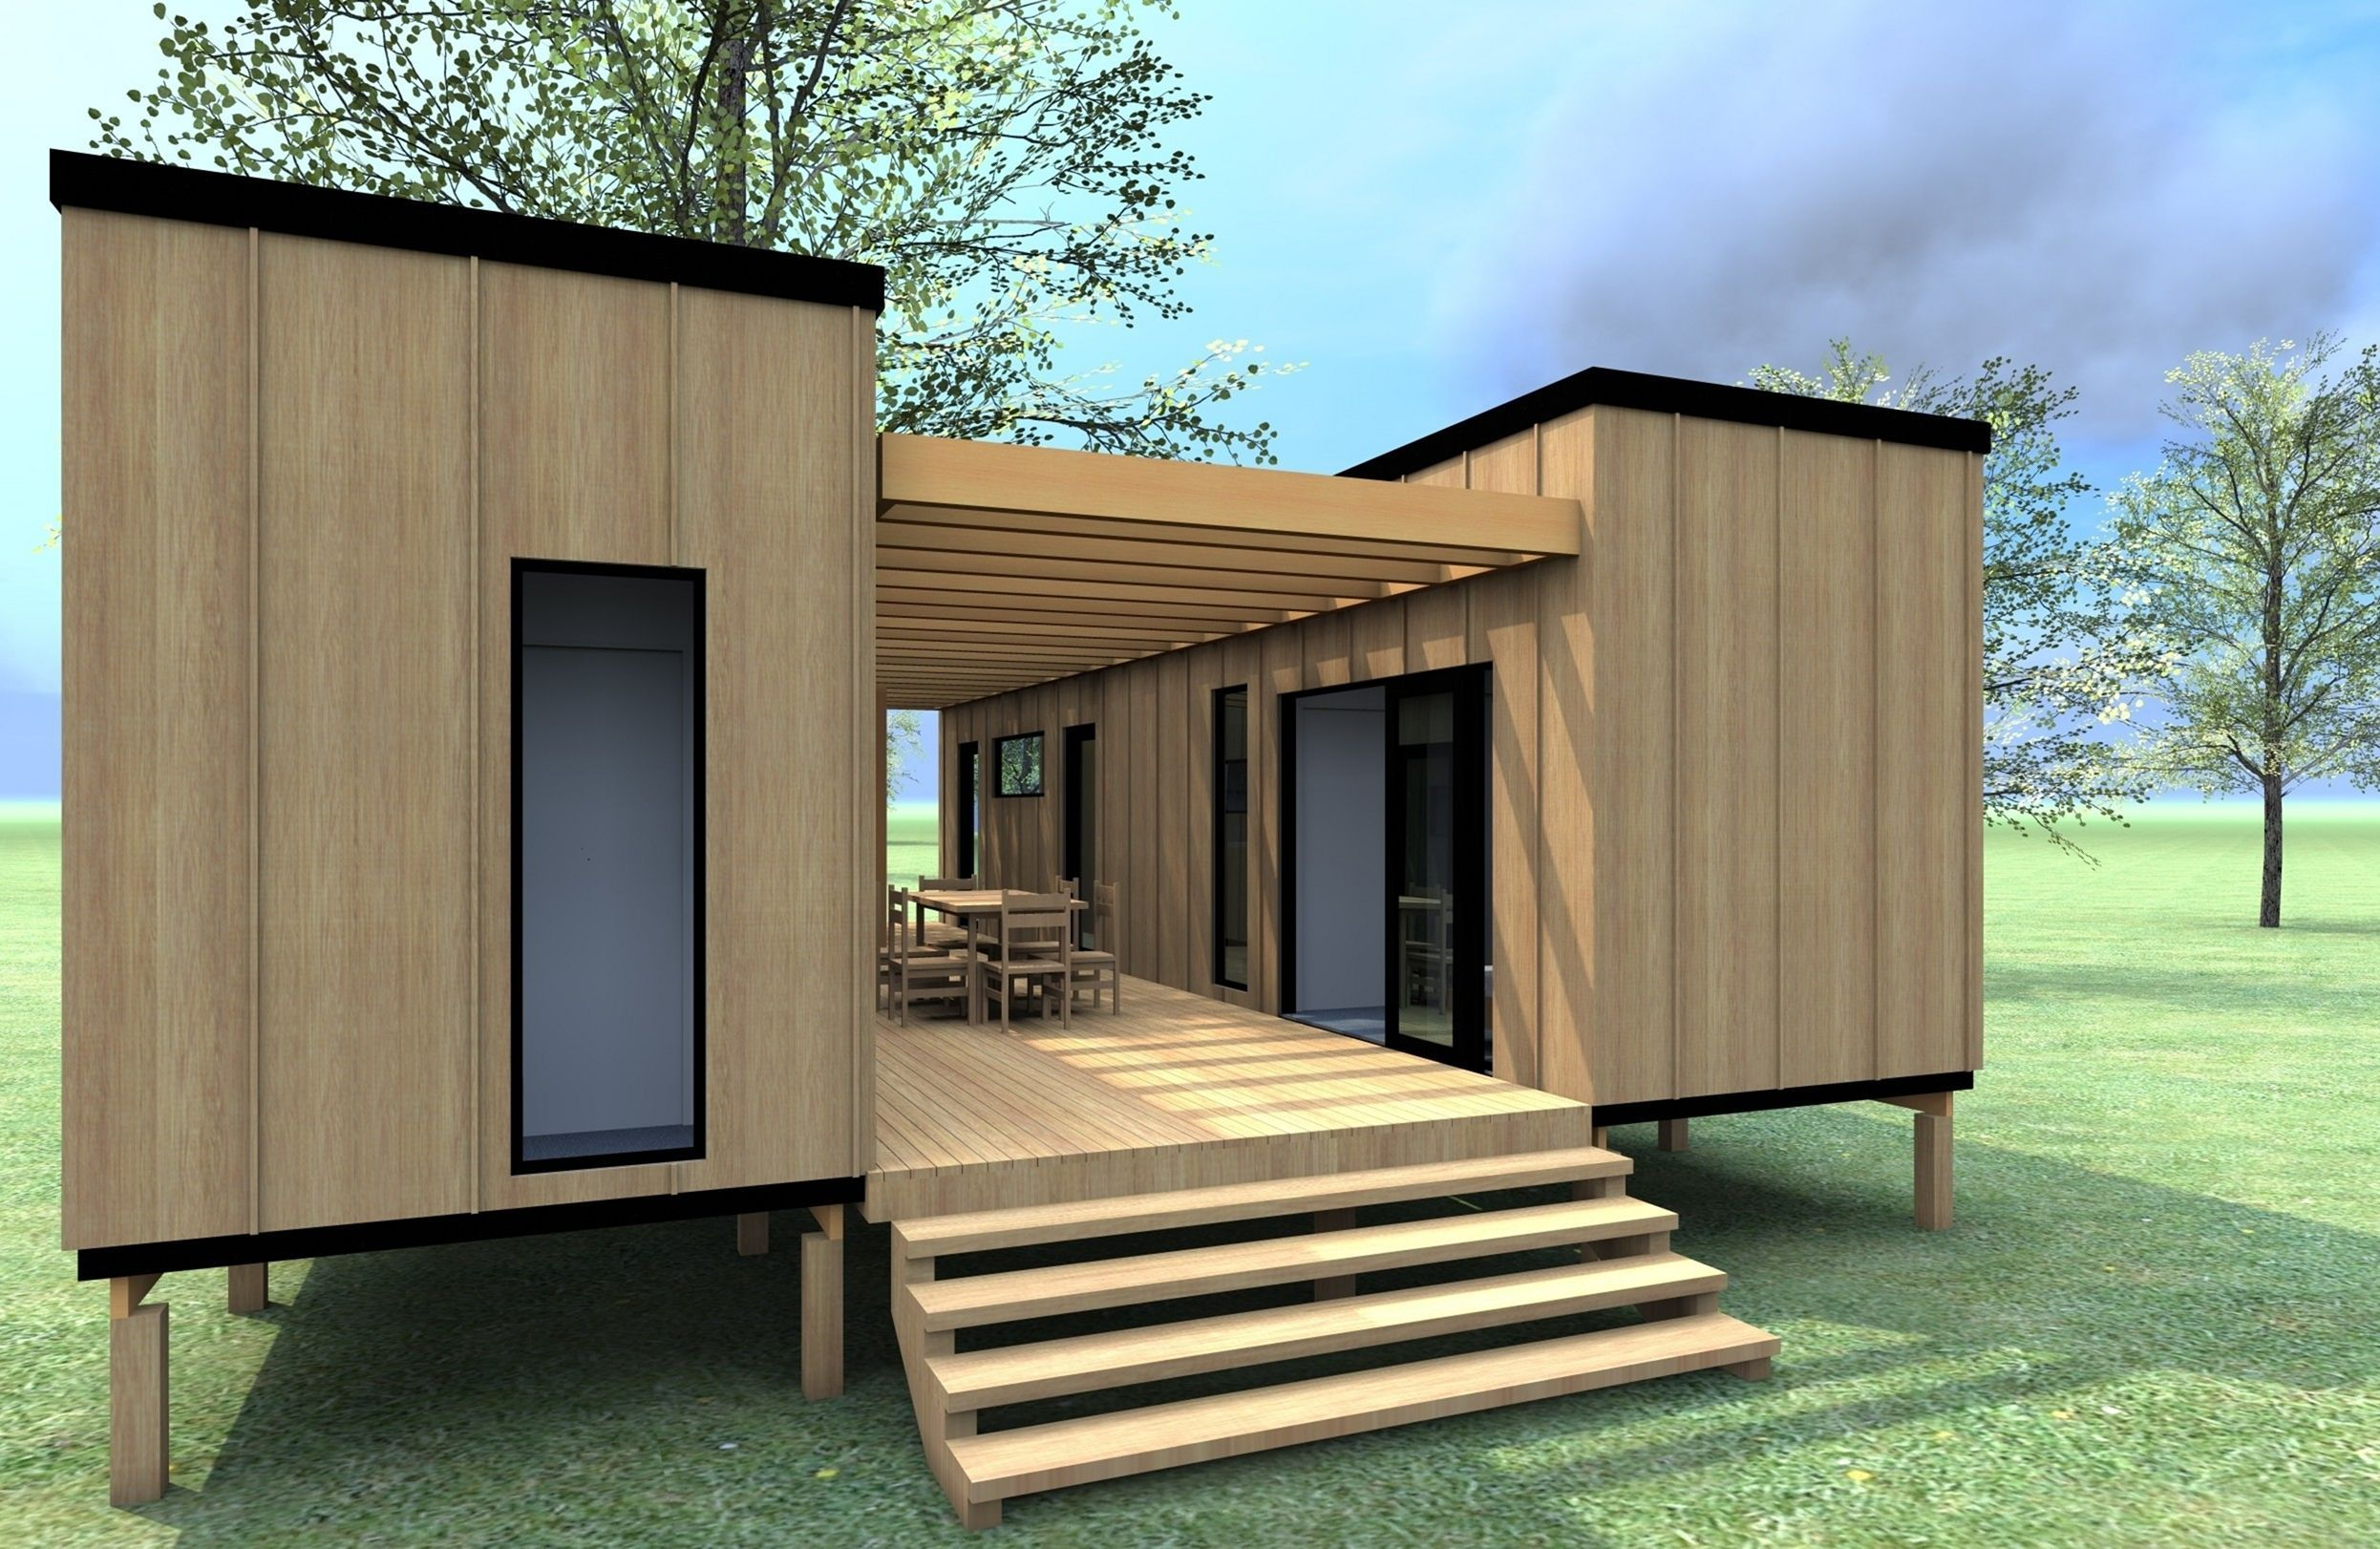 15 Attractive Container House Design Ideas For Inspirations Container Homes Australia Shipping Container Home Designs Container House Design